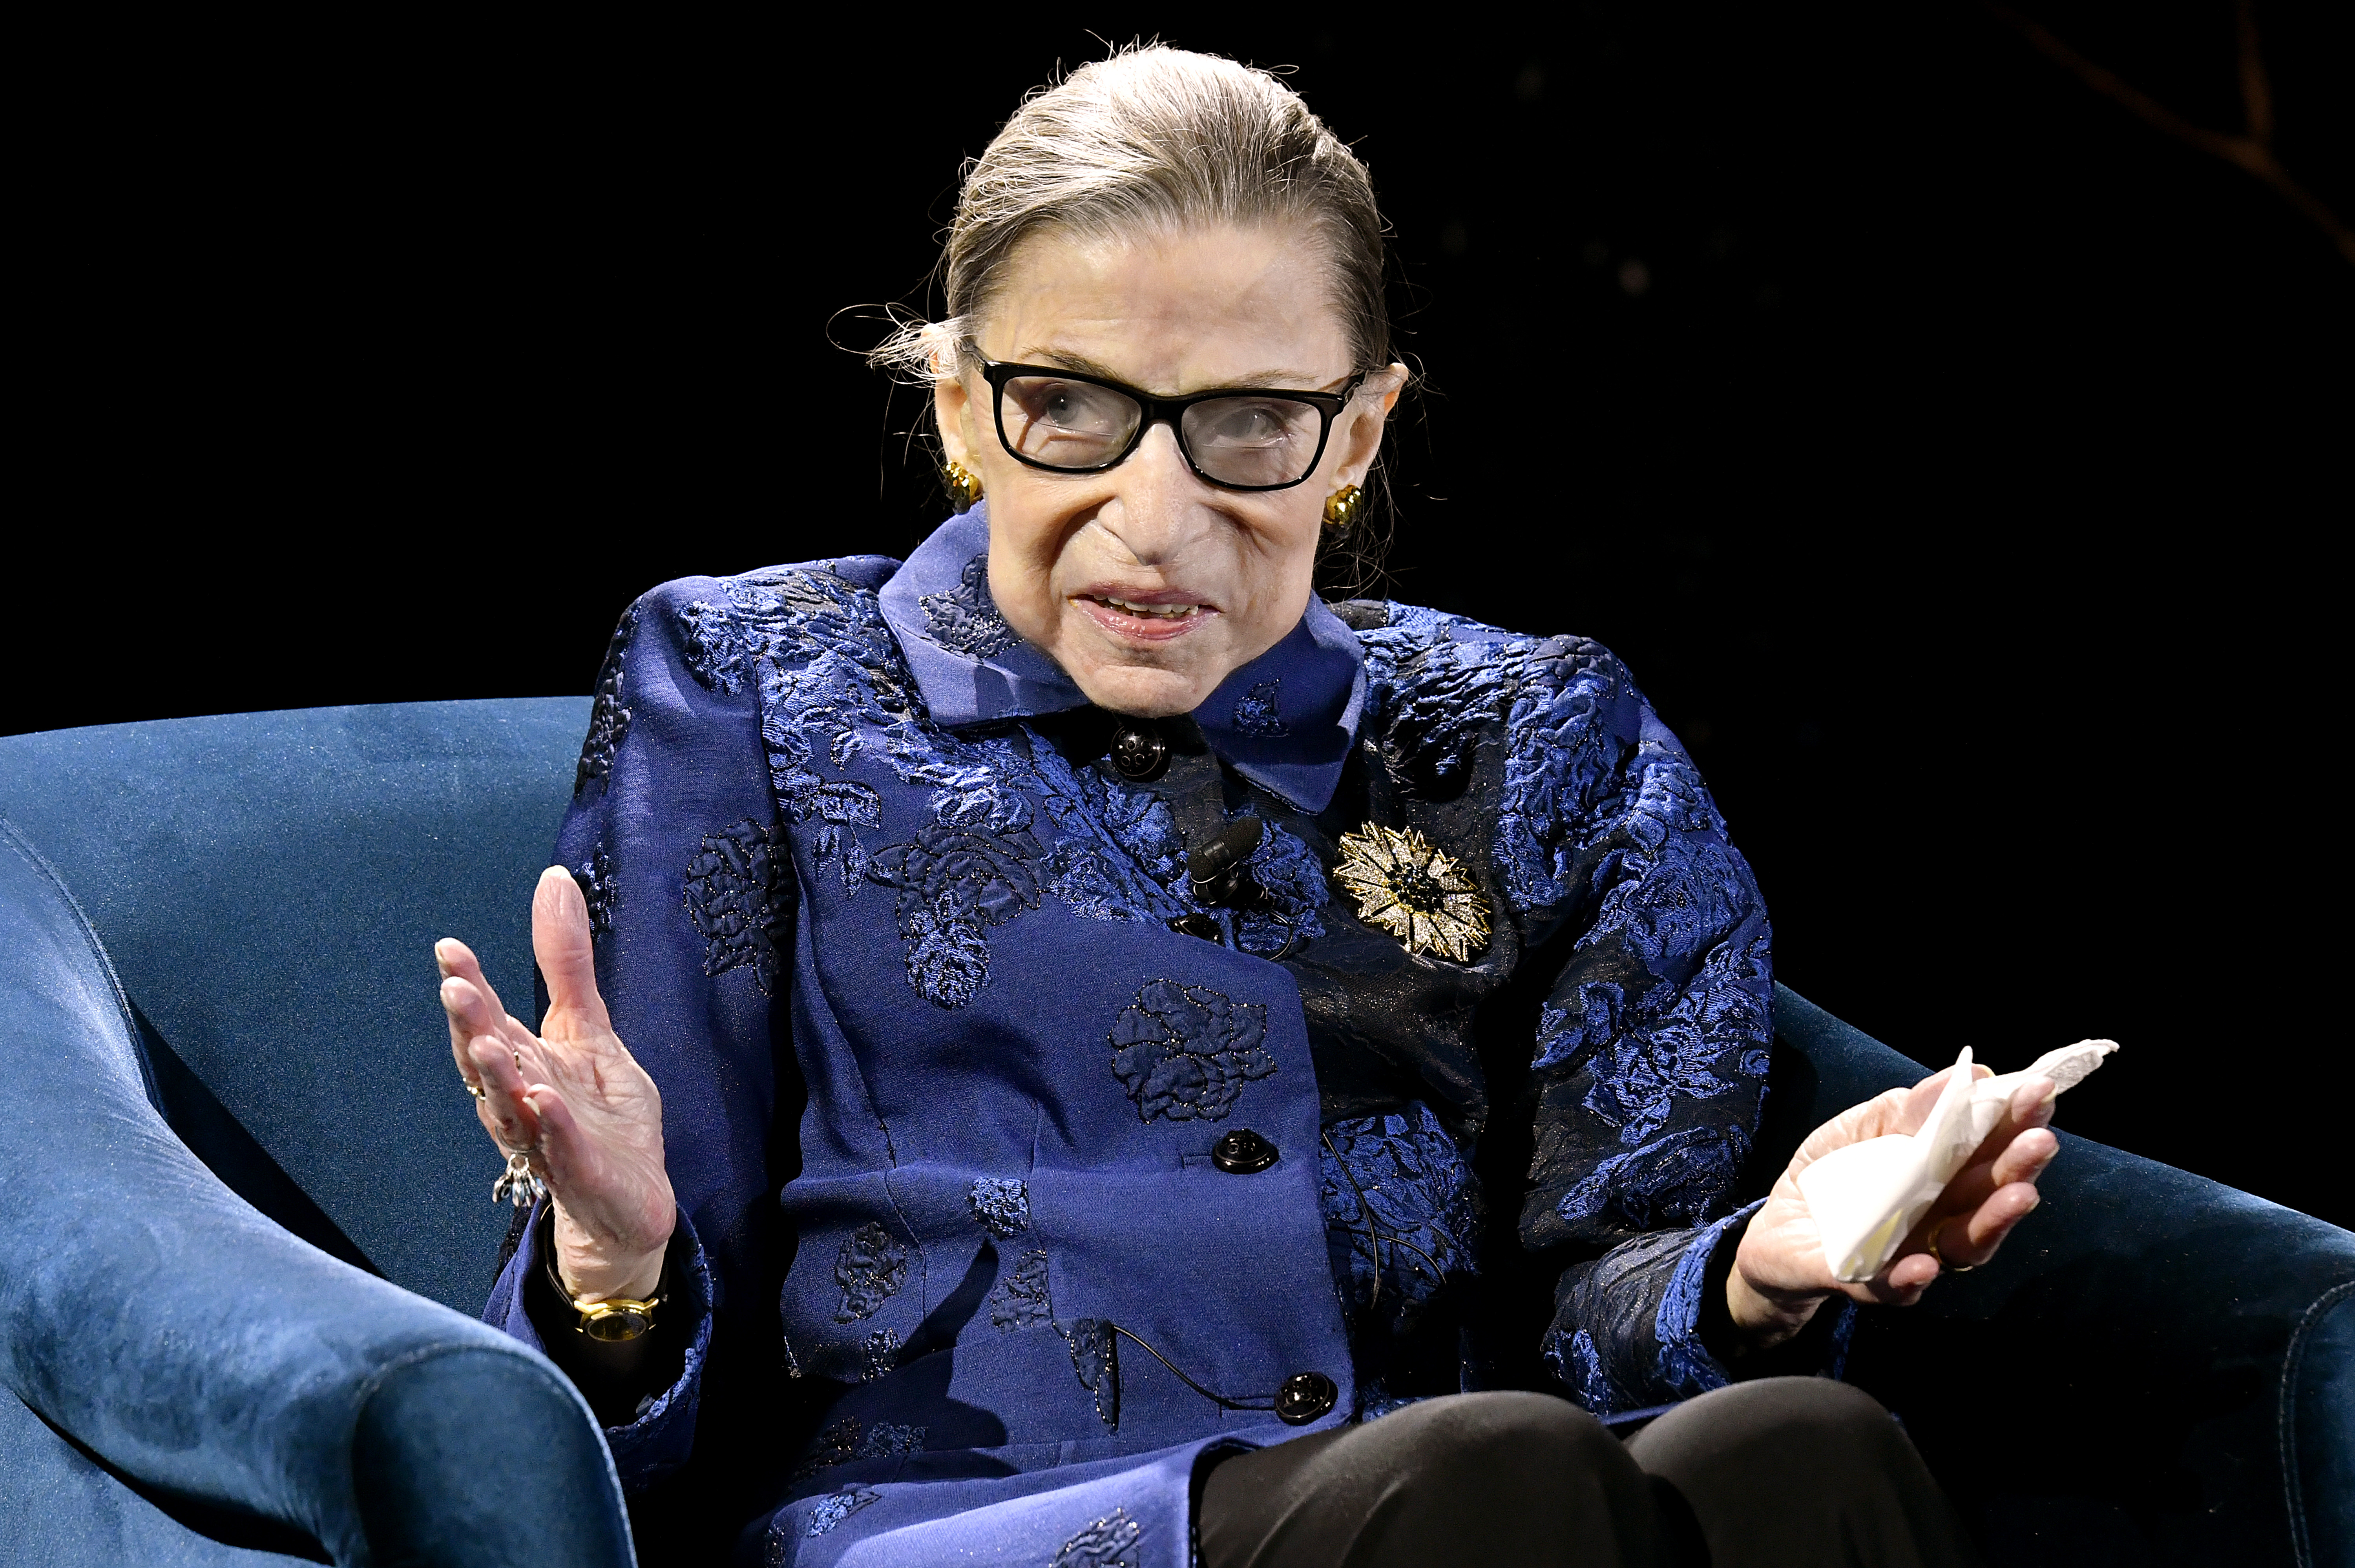 NEW YORK, NEW YORK - DECEMBER 16: Justice Ruth Bader Ginsburg speaks onstage at the Fourth Annual Berggruen Prize Gala celebrating 2019 Laureate Supreme Court Justice Ruth Bader Ginsburg In New York City on December 16, 2019 in New York City. (Photo by Eugene Gologursky/Getty Images for Berggruen Institute )